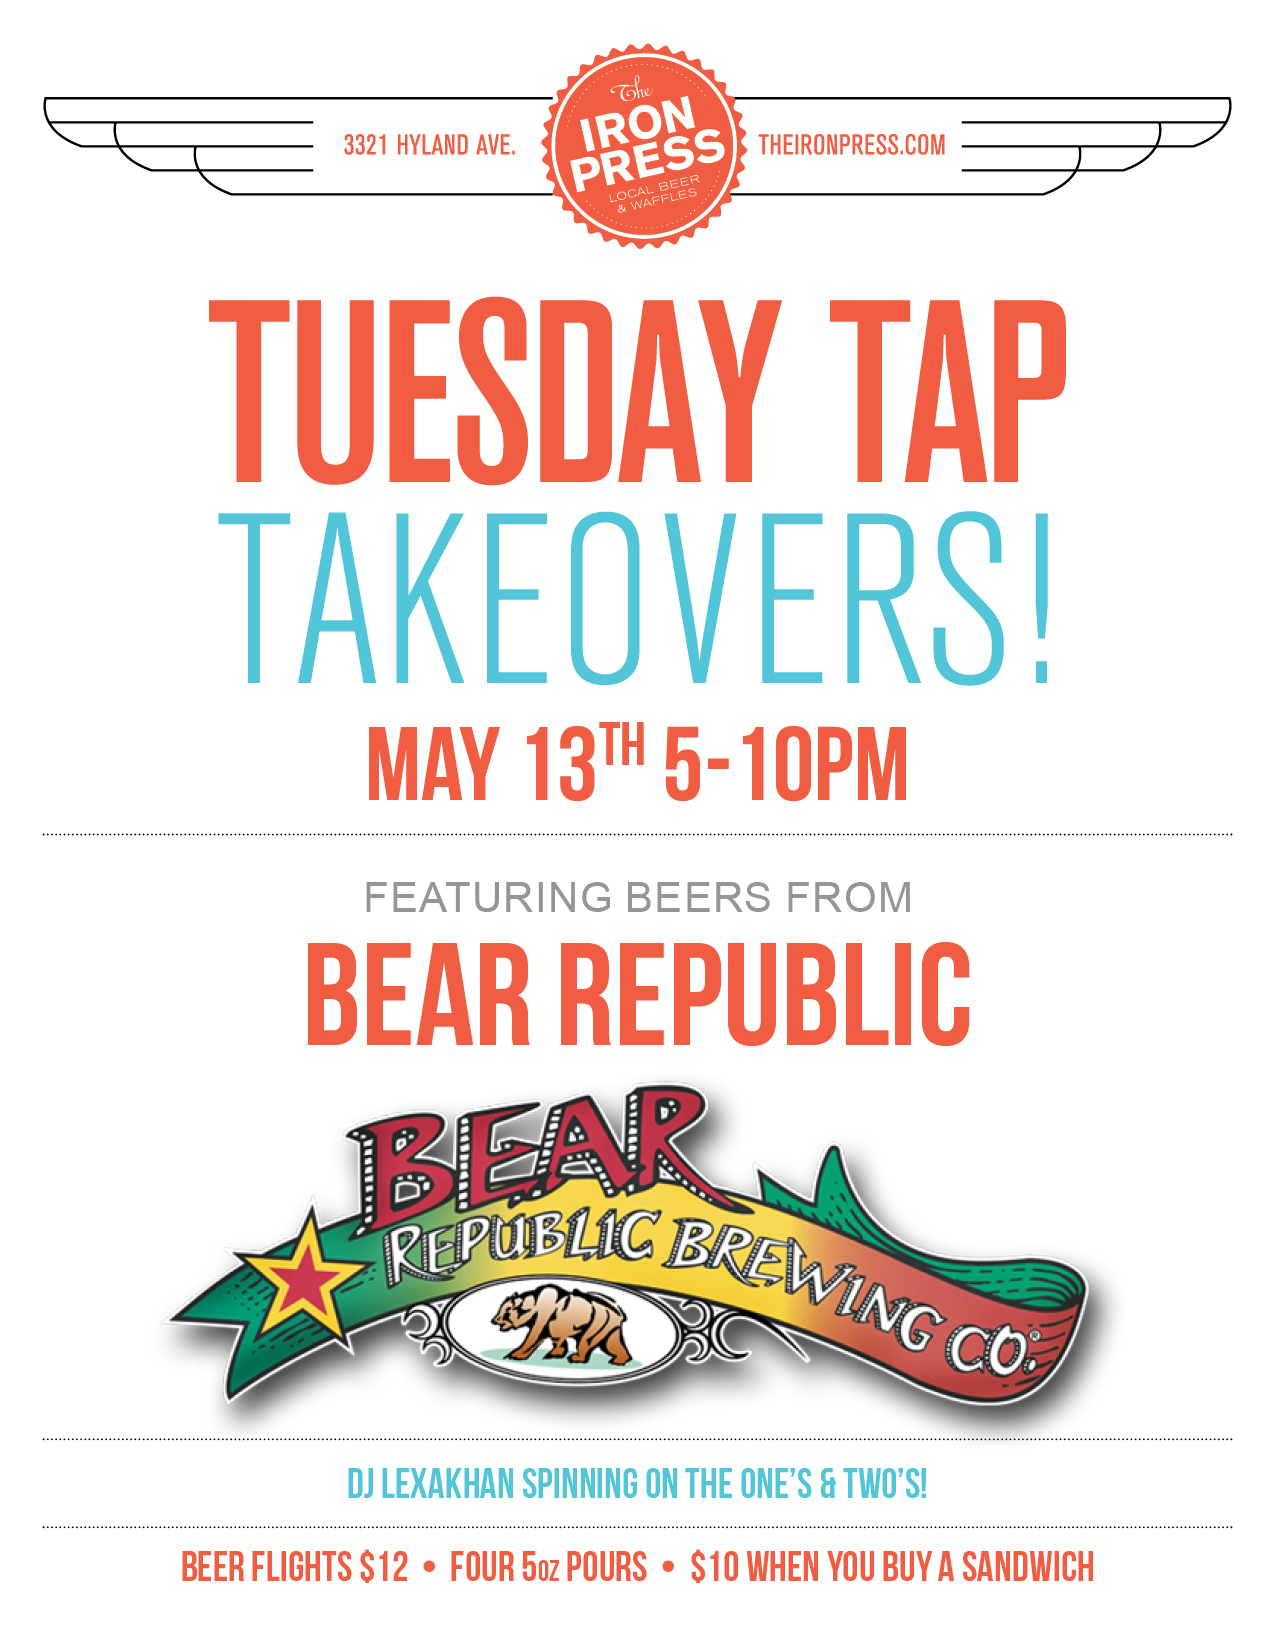 Tuesday Tap Takeovers - The Bear Republic Brewing Co. Edition